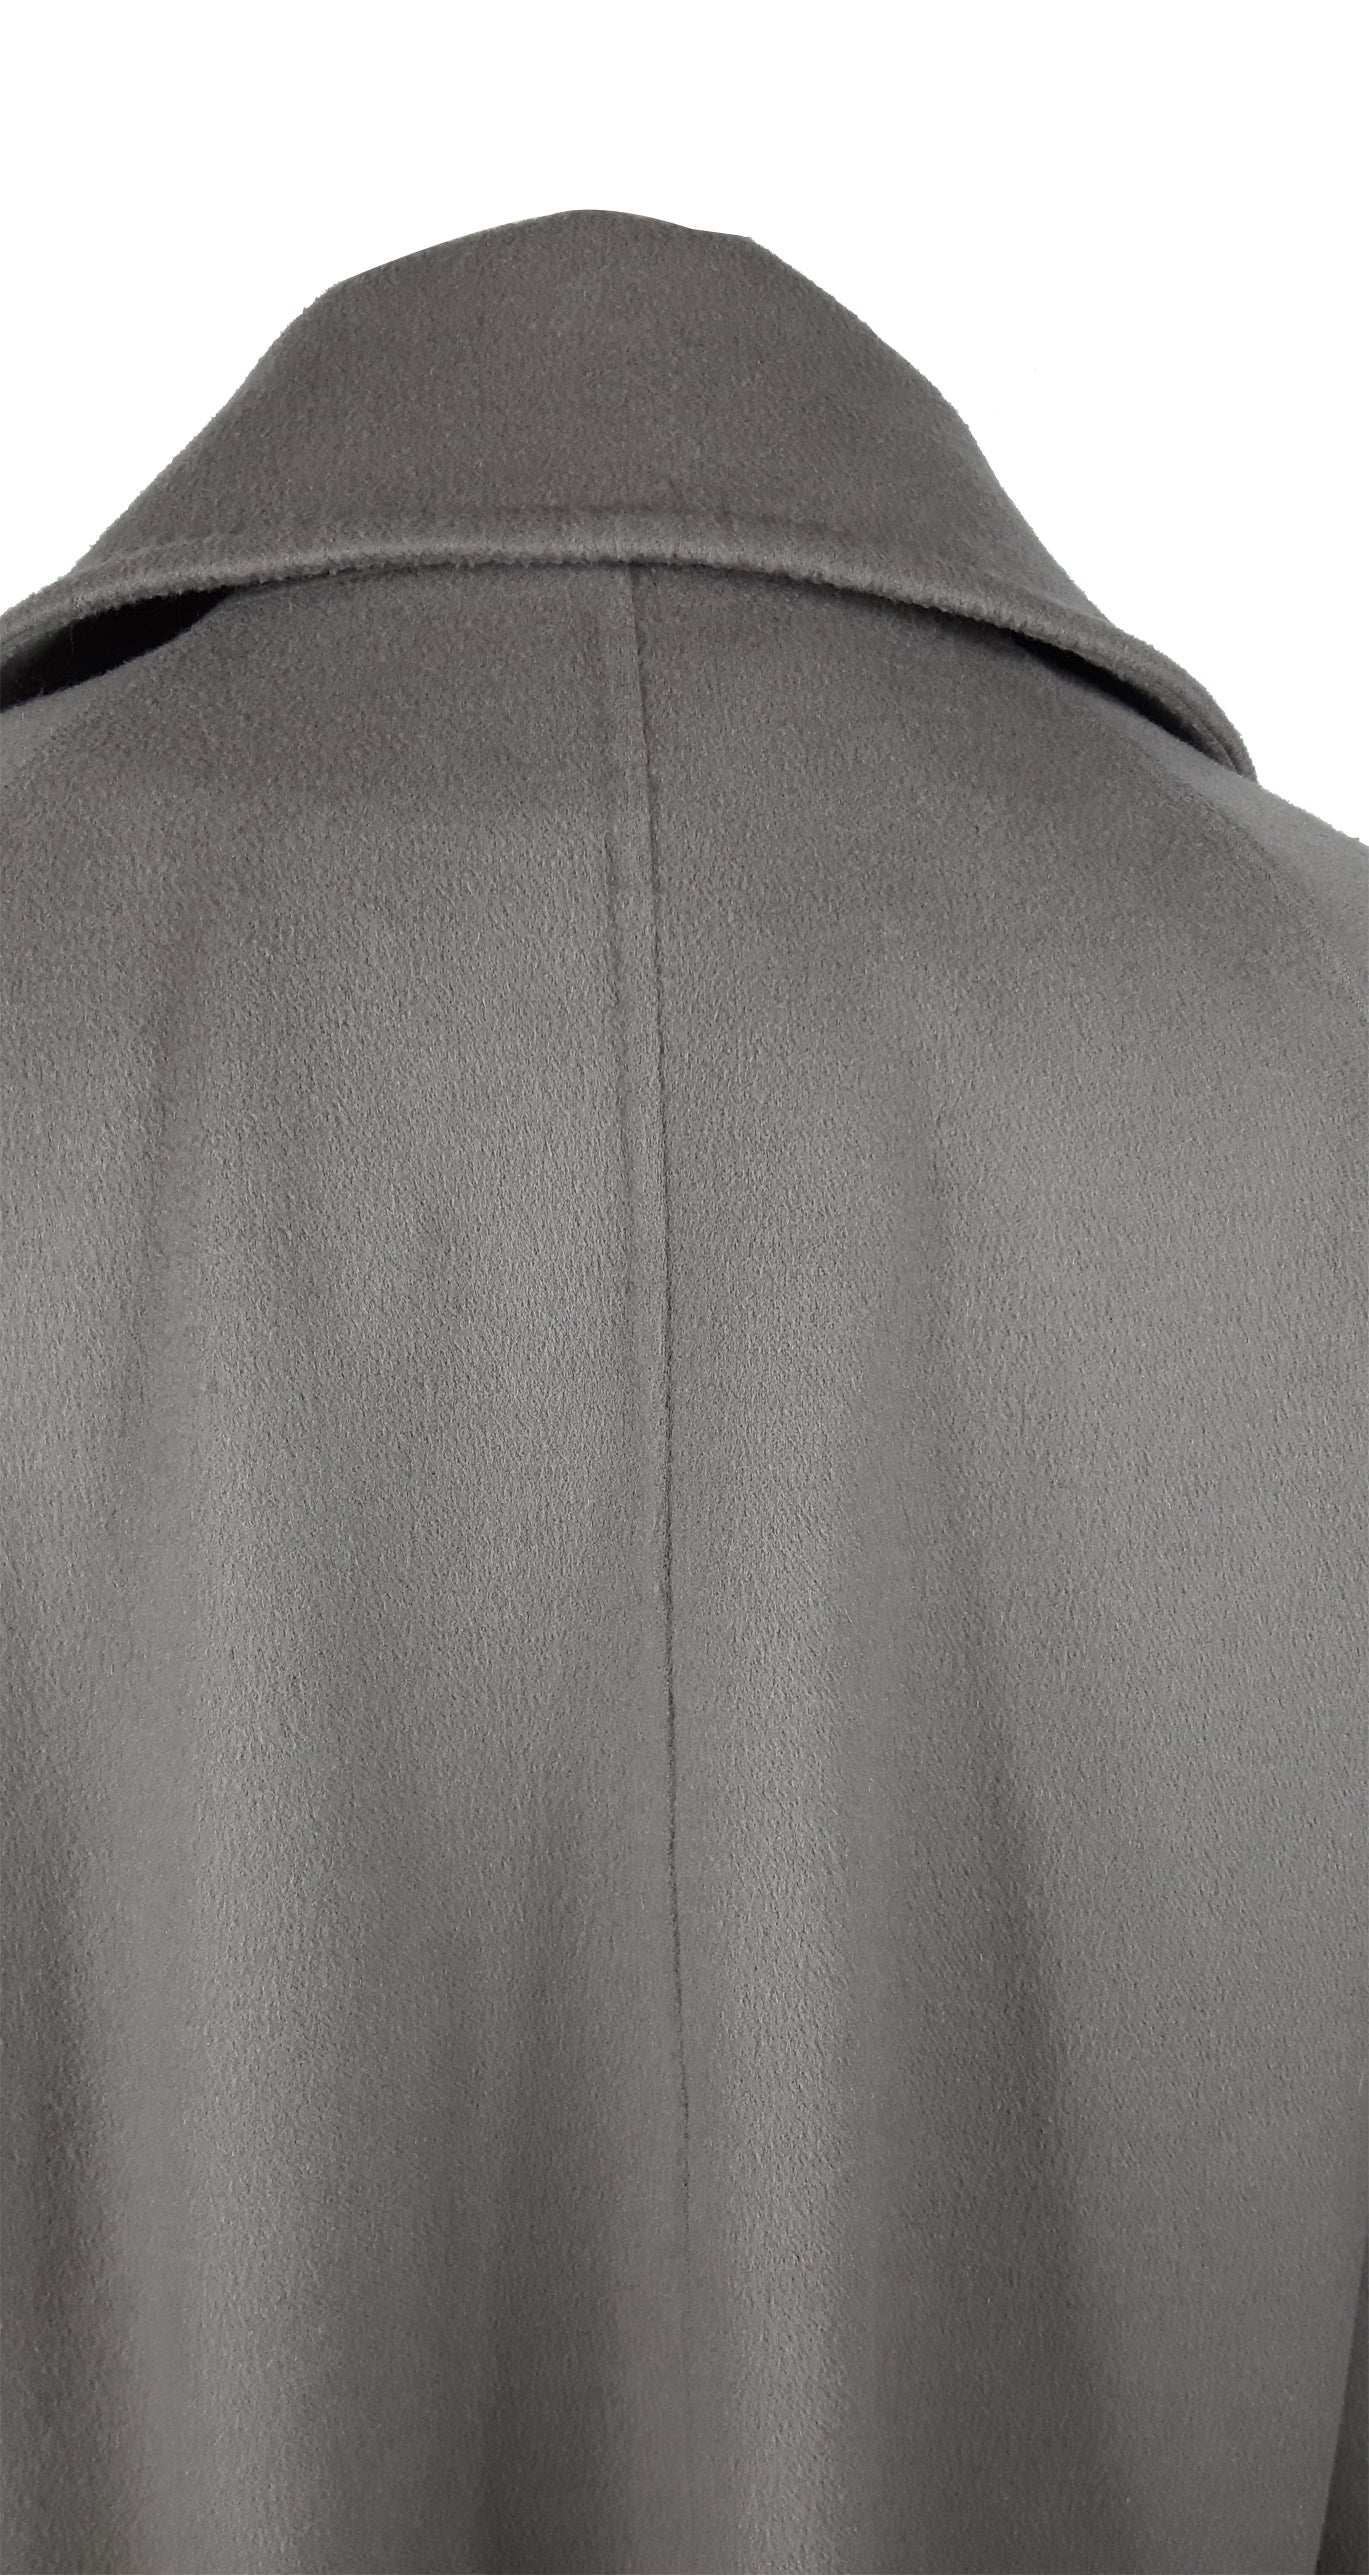 MAX MARA Grey 90% Virgin Wool 10% Cashmere Mid Size Cape Style Jacket Size 38(EU)